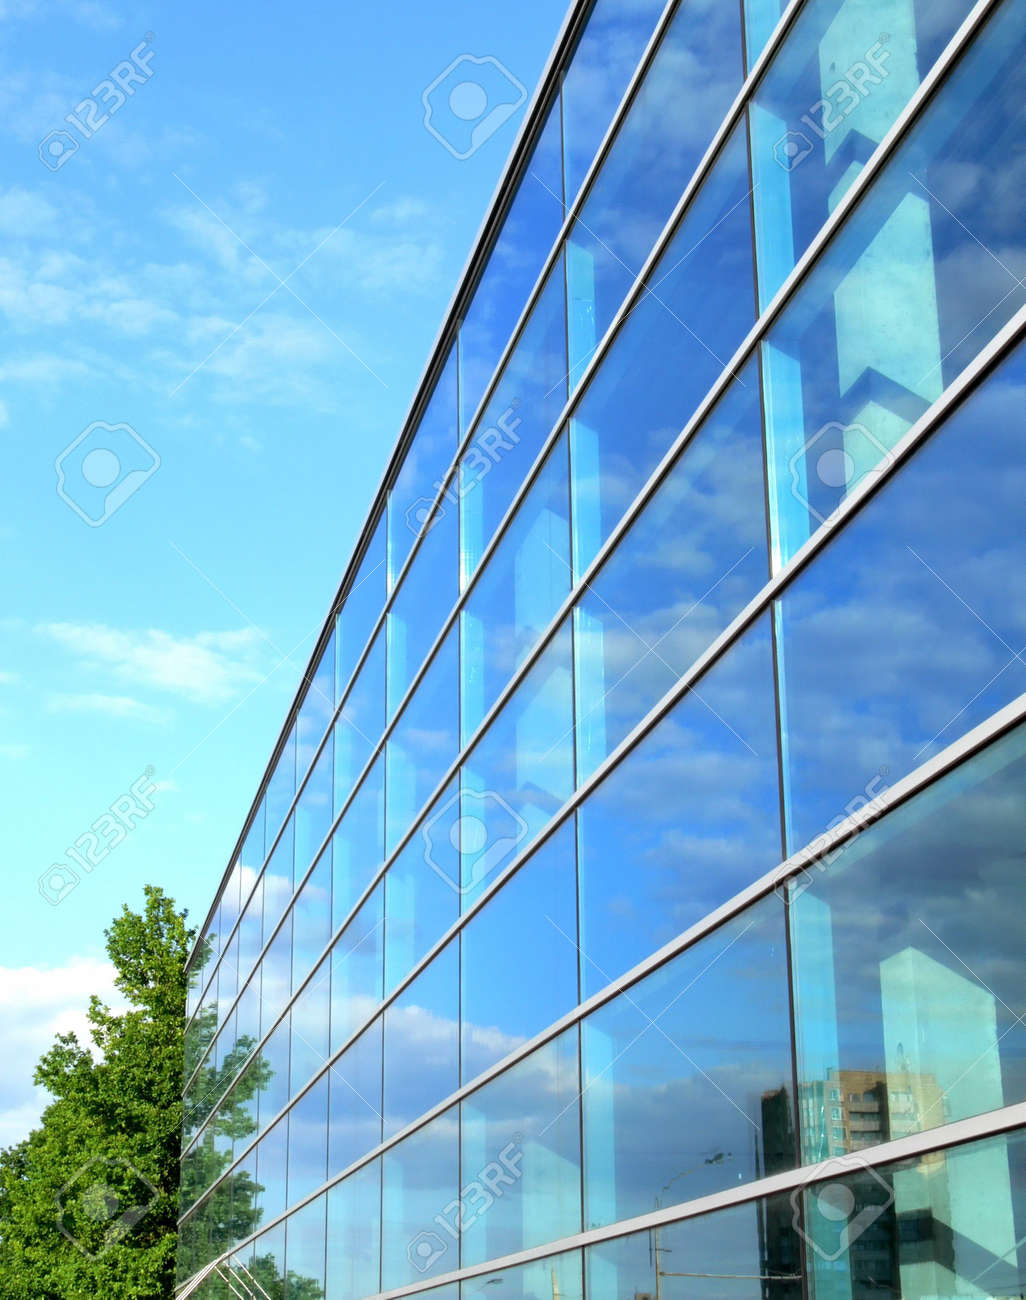 Office building with glass windows. Stock Photo - 451267